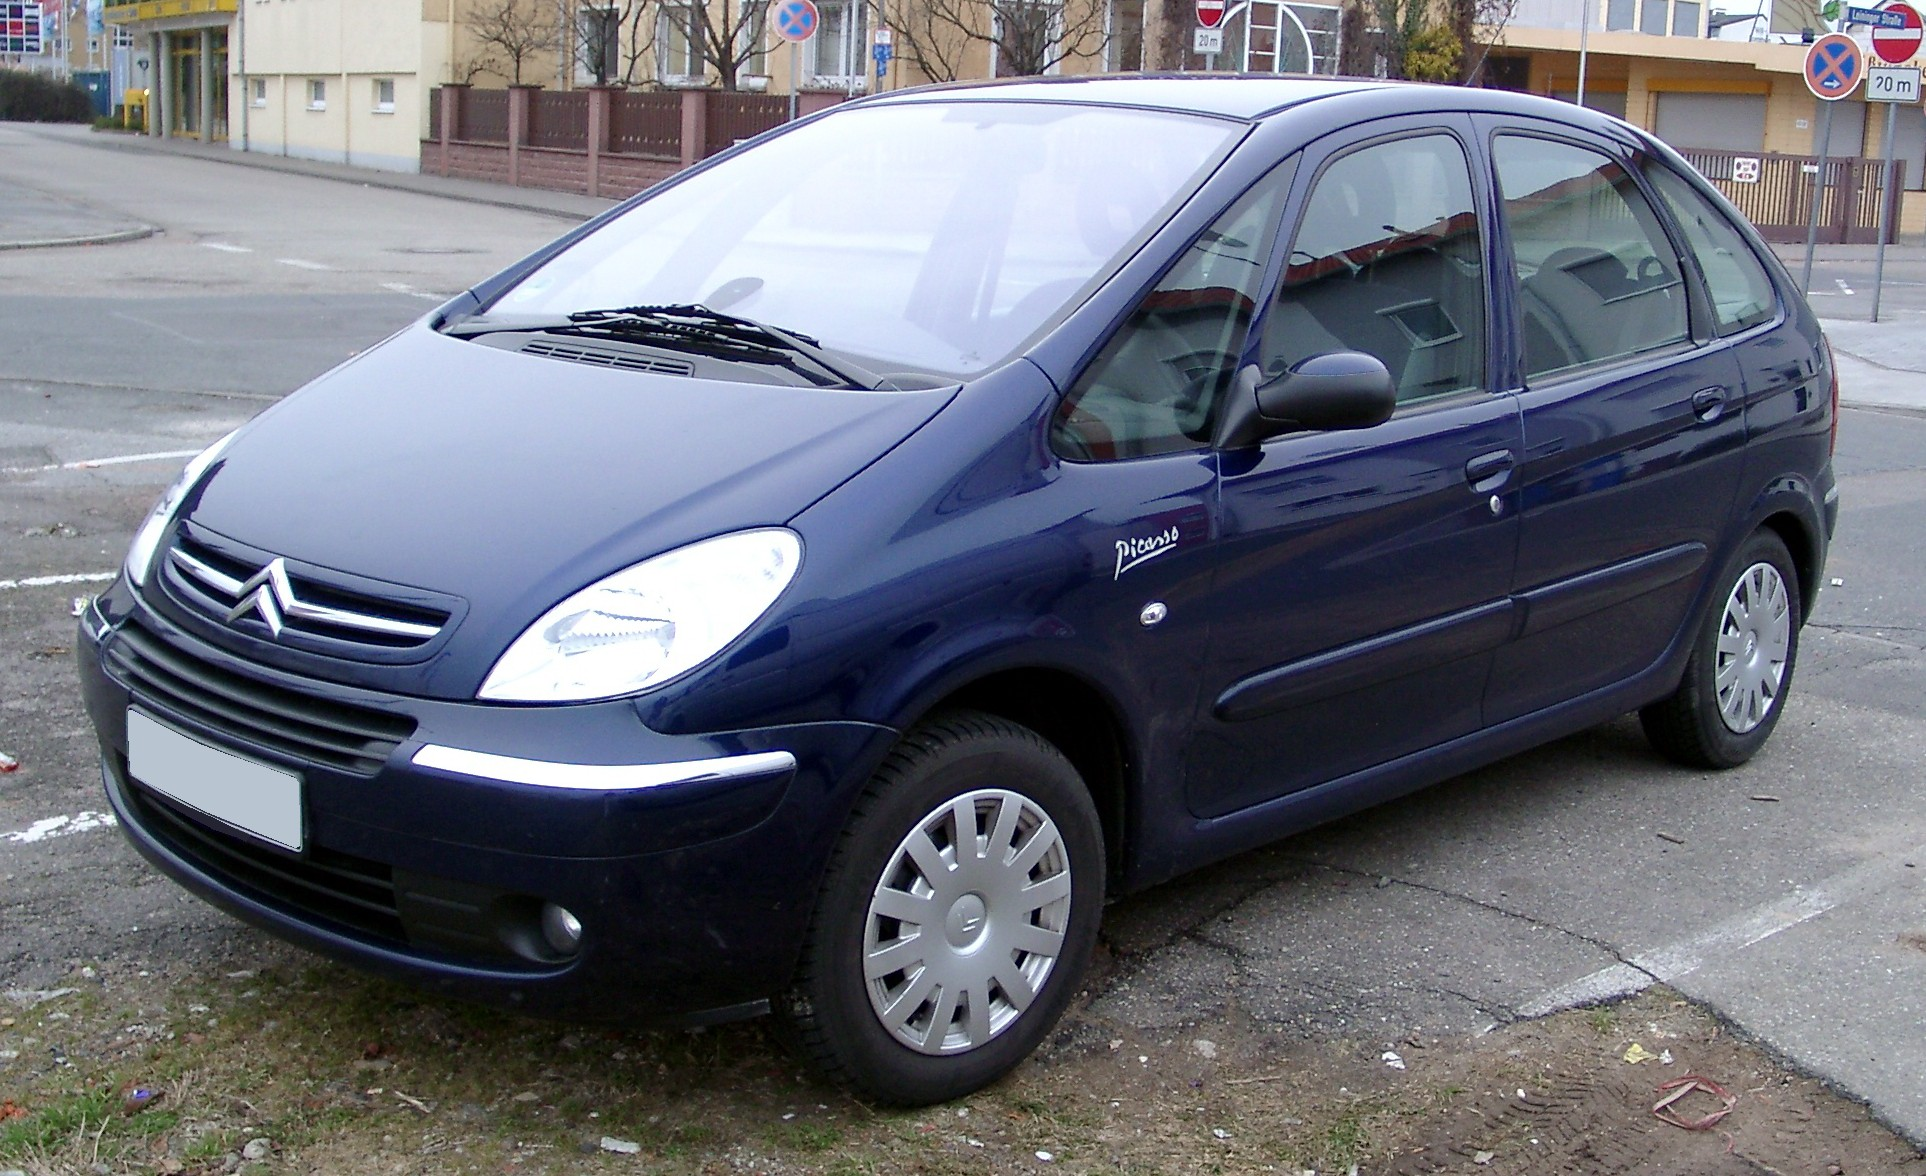 citroen xsara picasso photos news reviews specs car listings. Black Bedroom Furniture Sets. Home Design Ideas